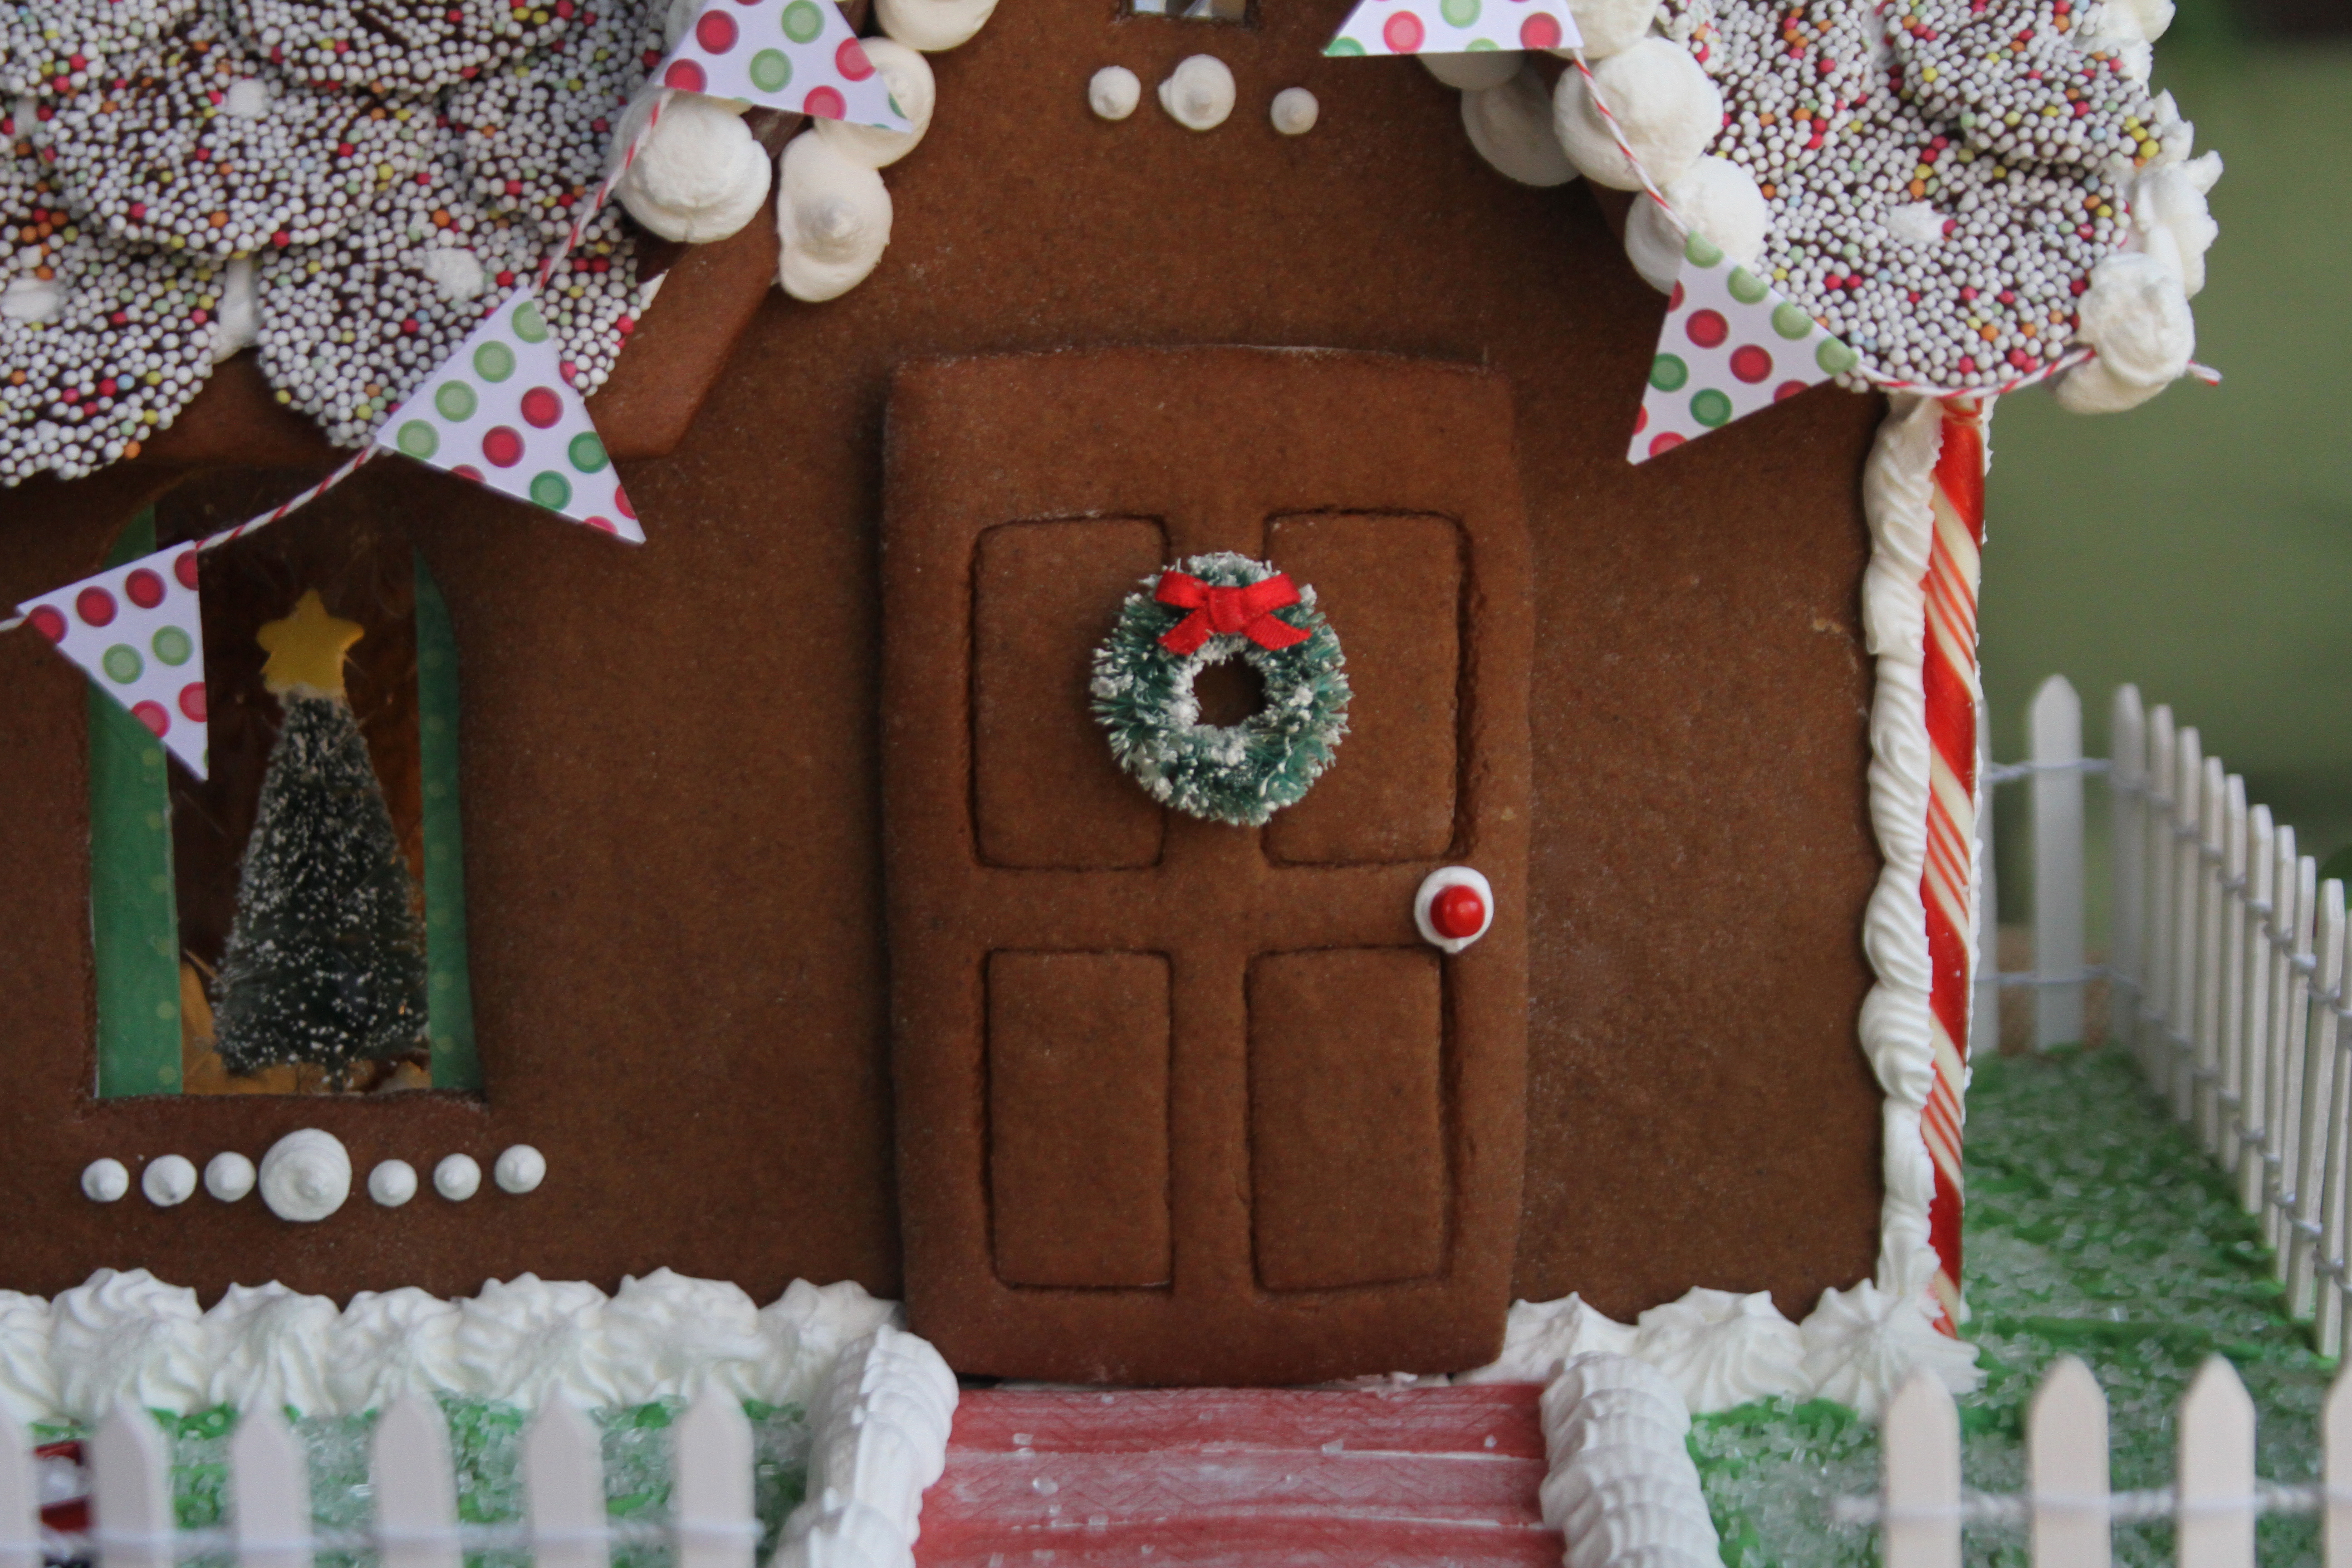 Front Door of Gingerbread House & How to make \u0026 build a gingerbread house with photos \u0026 recipe |